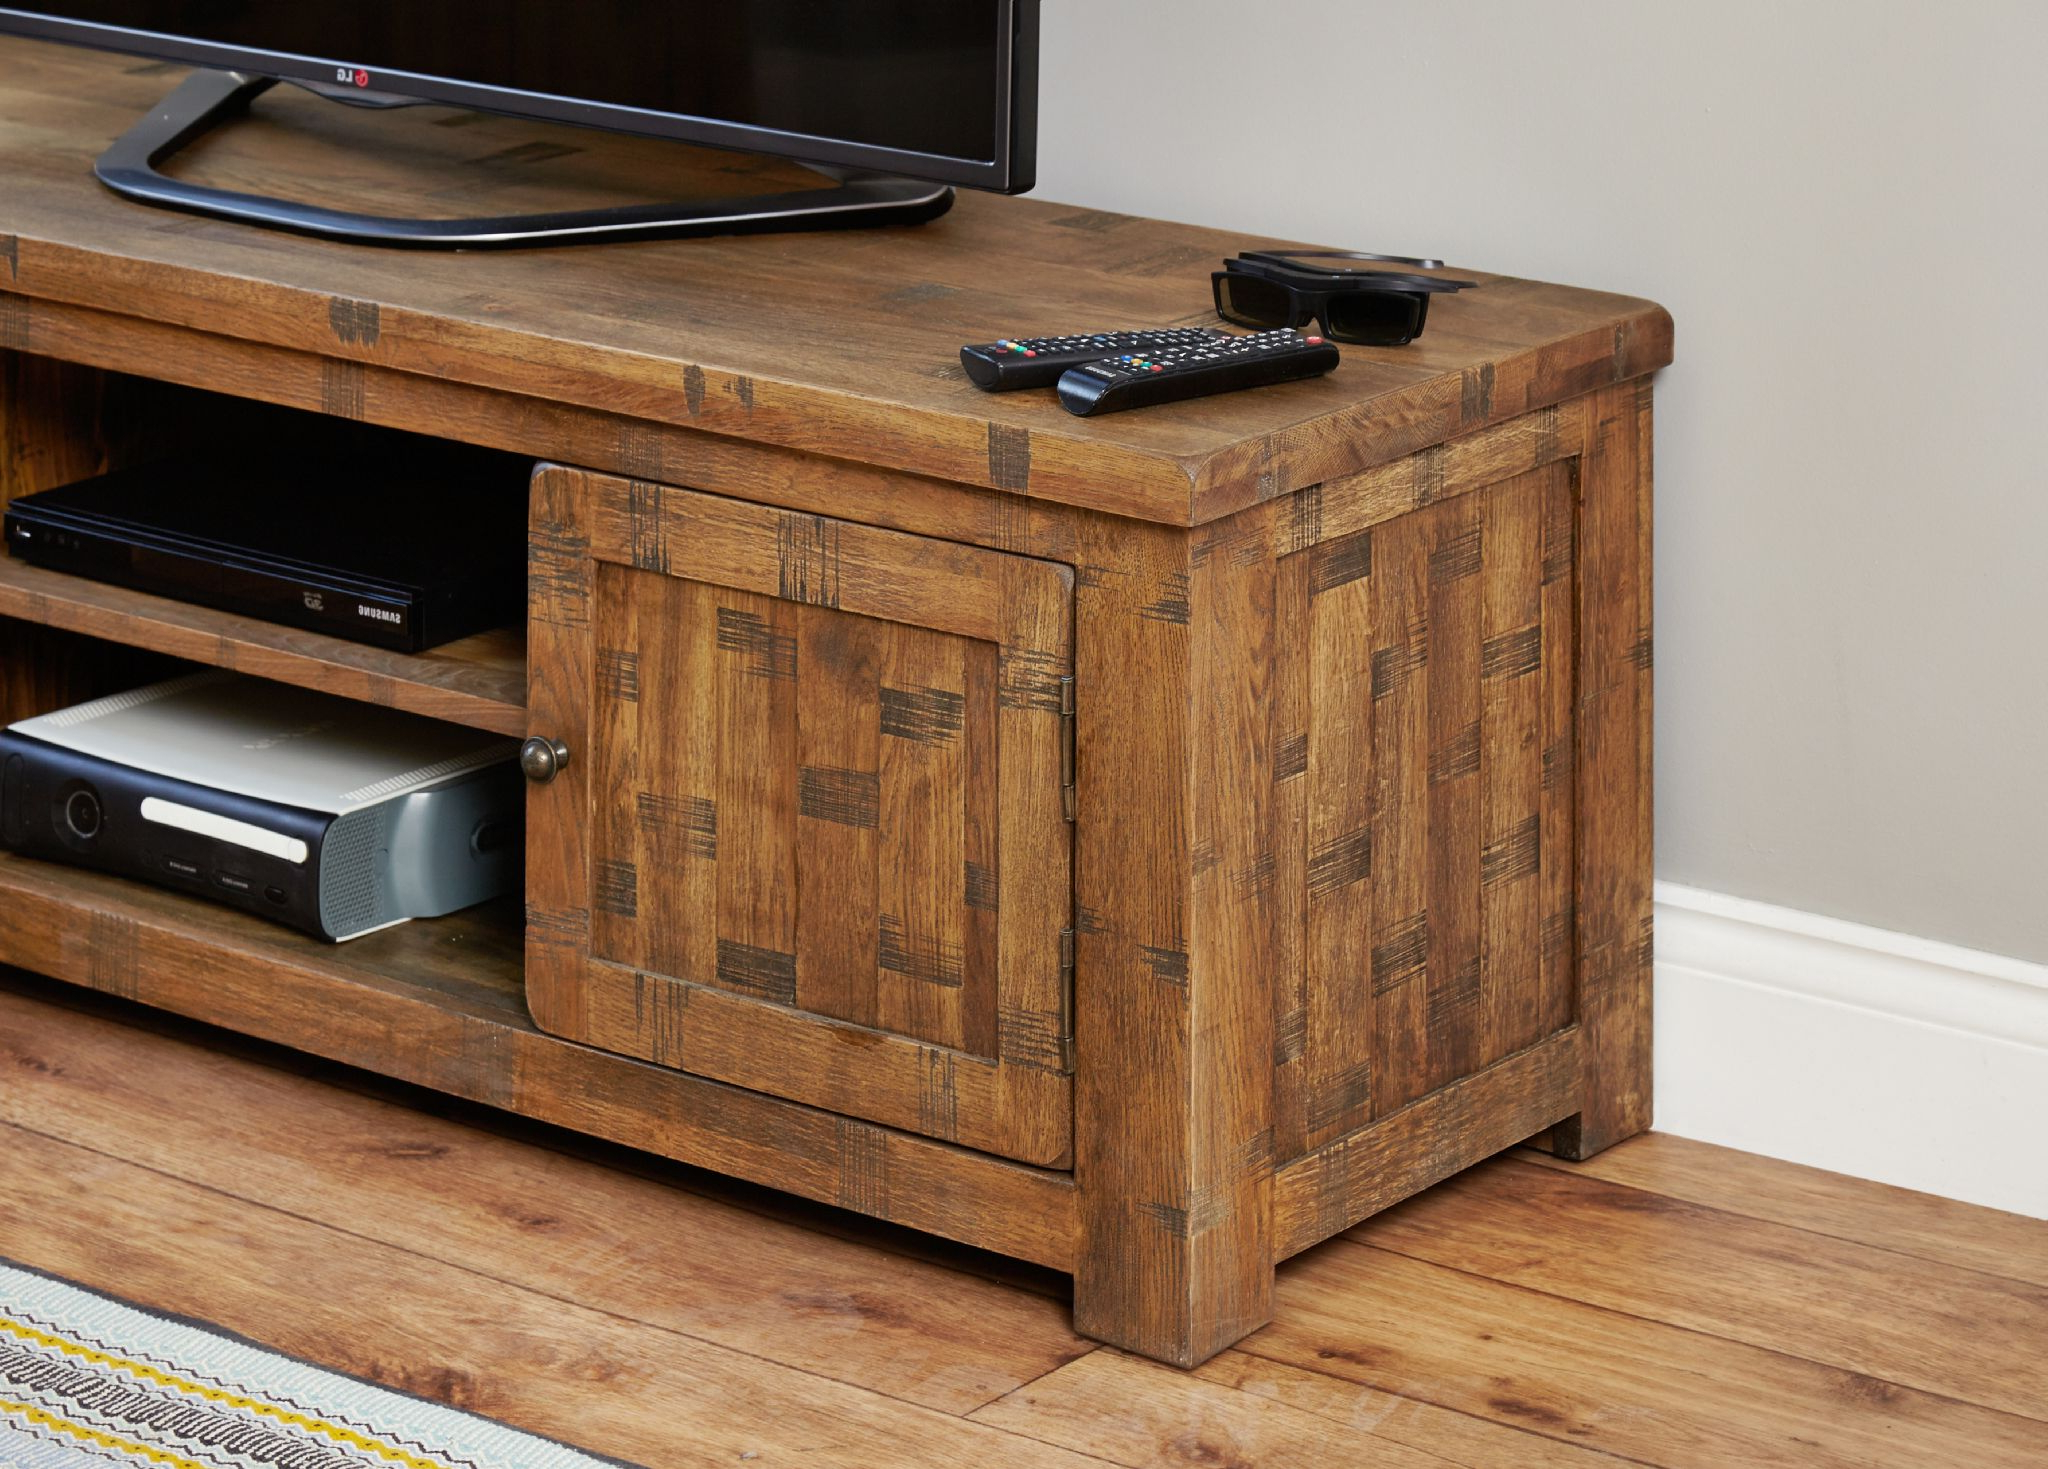 Antique Tv Stand For Sale Rustic Wood Entertainment Center Console Pertaining To Well Liked Rustic Tv Stands For Sale (View 3 of 20)